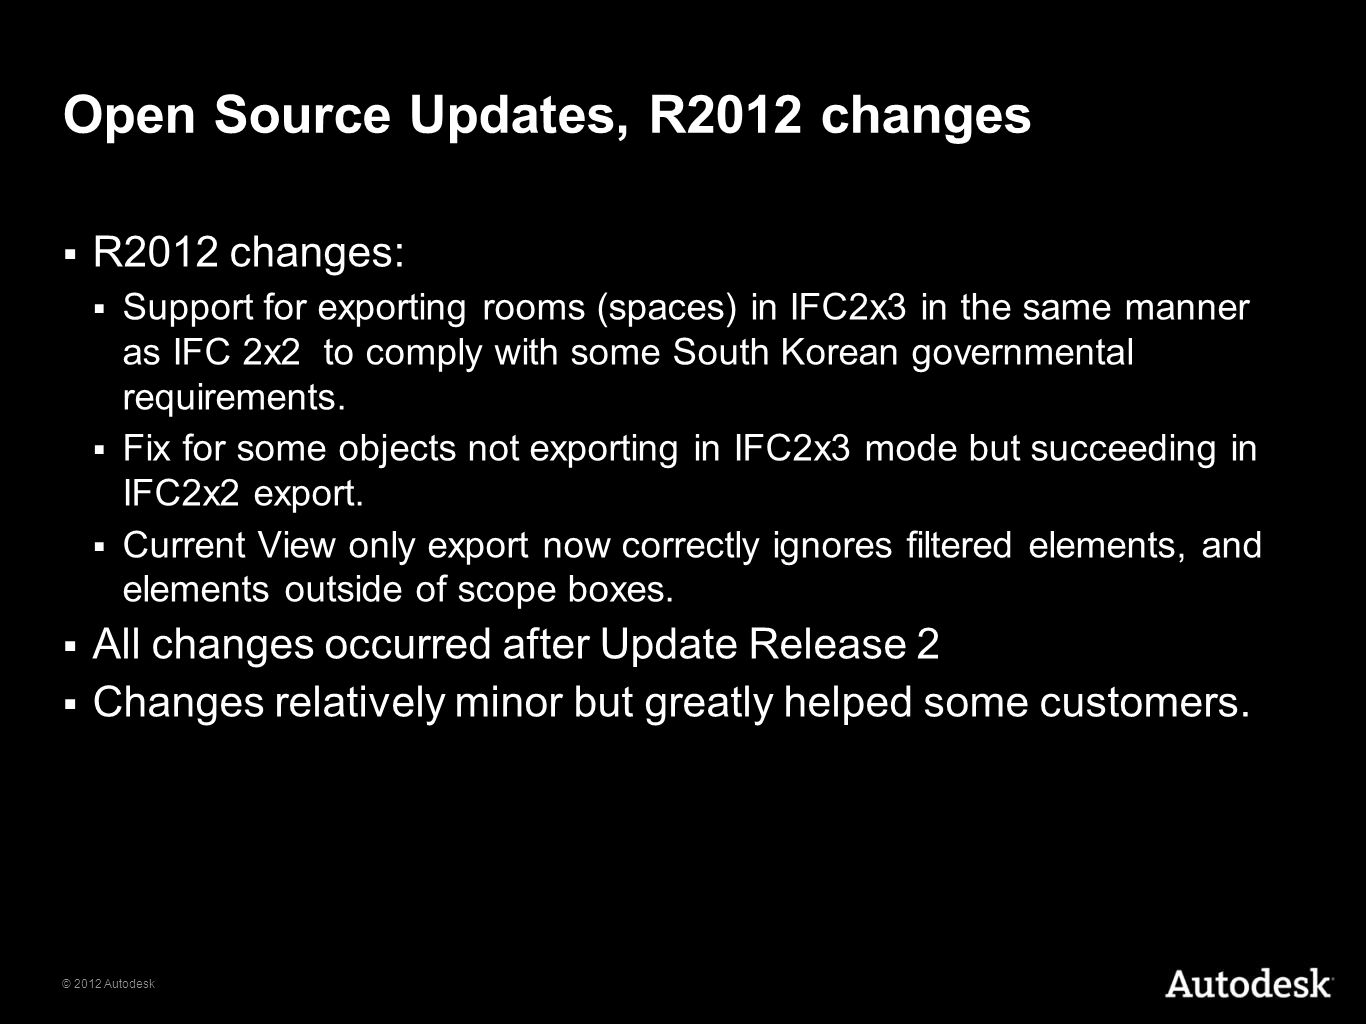 Open Source Updates, R2012 changes